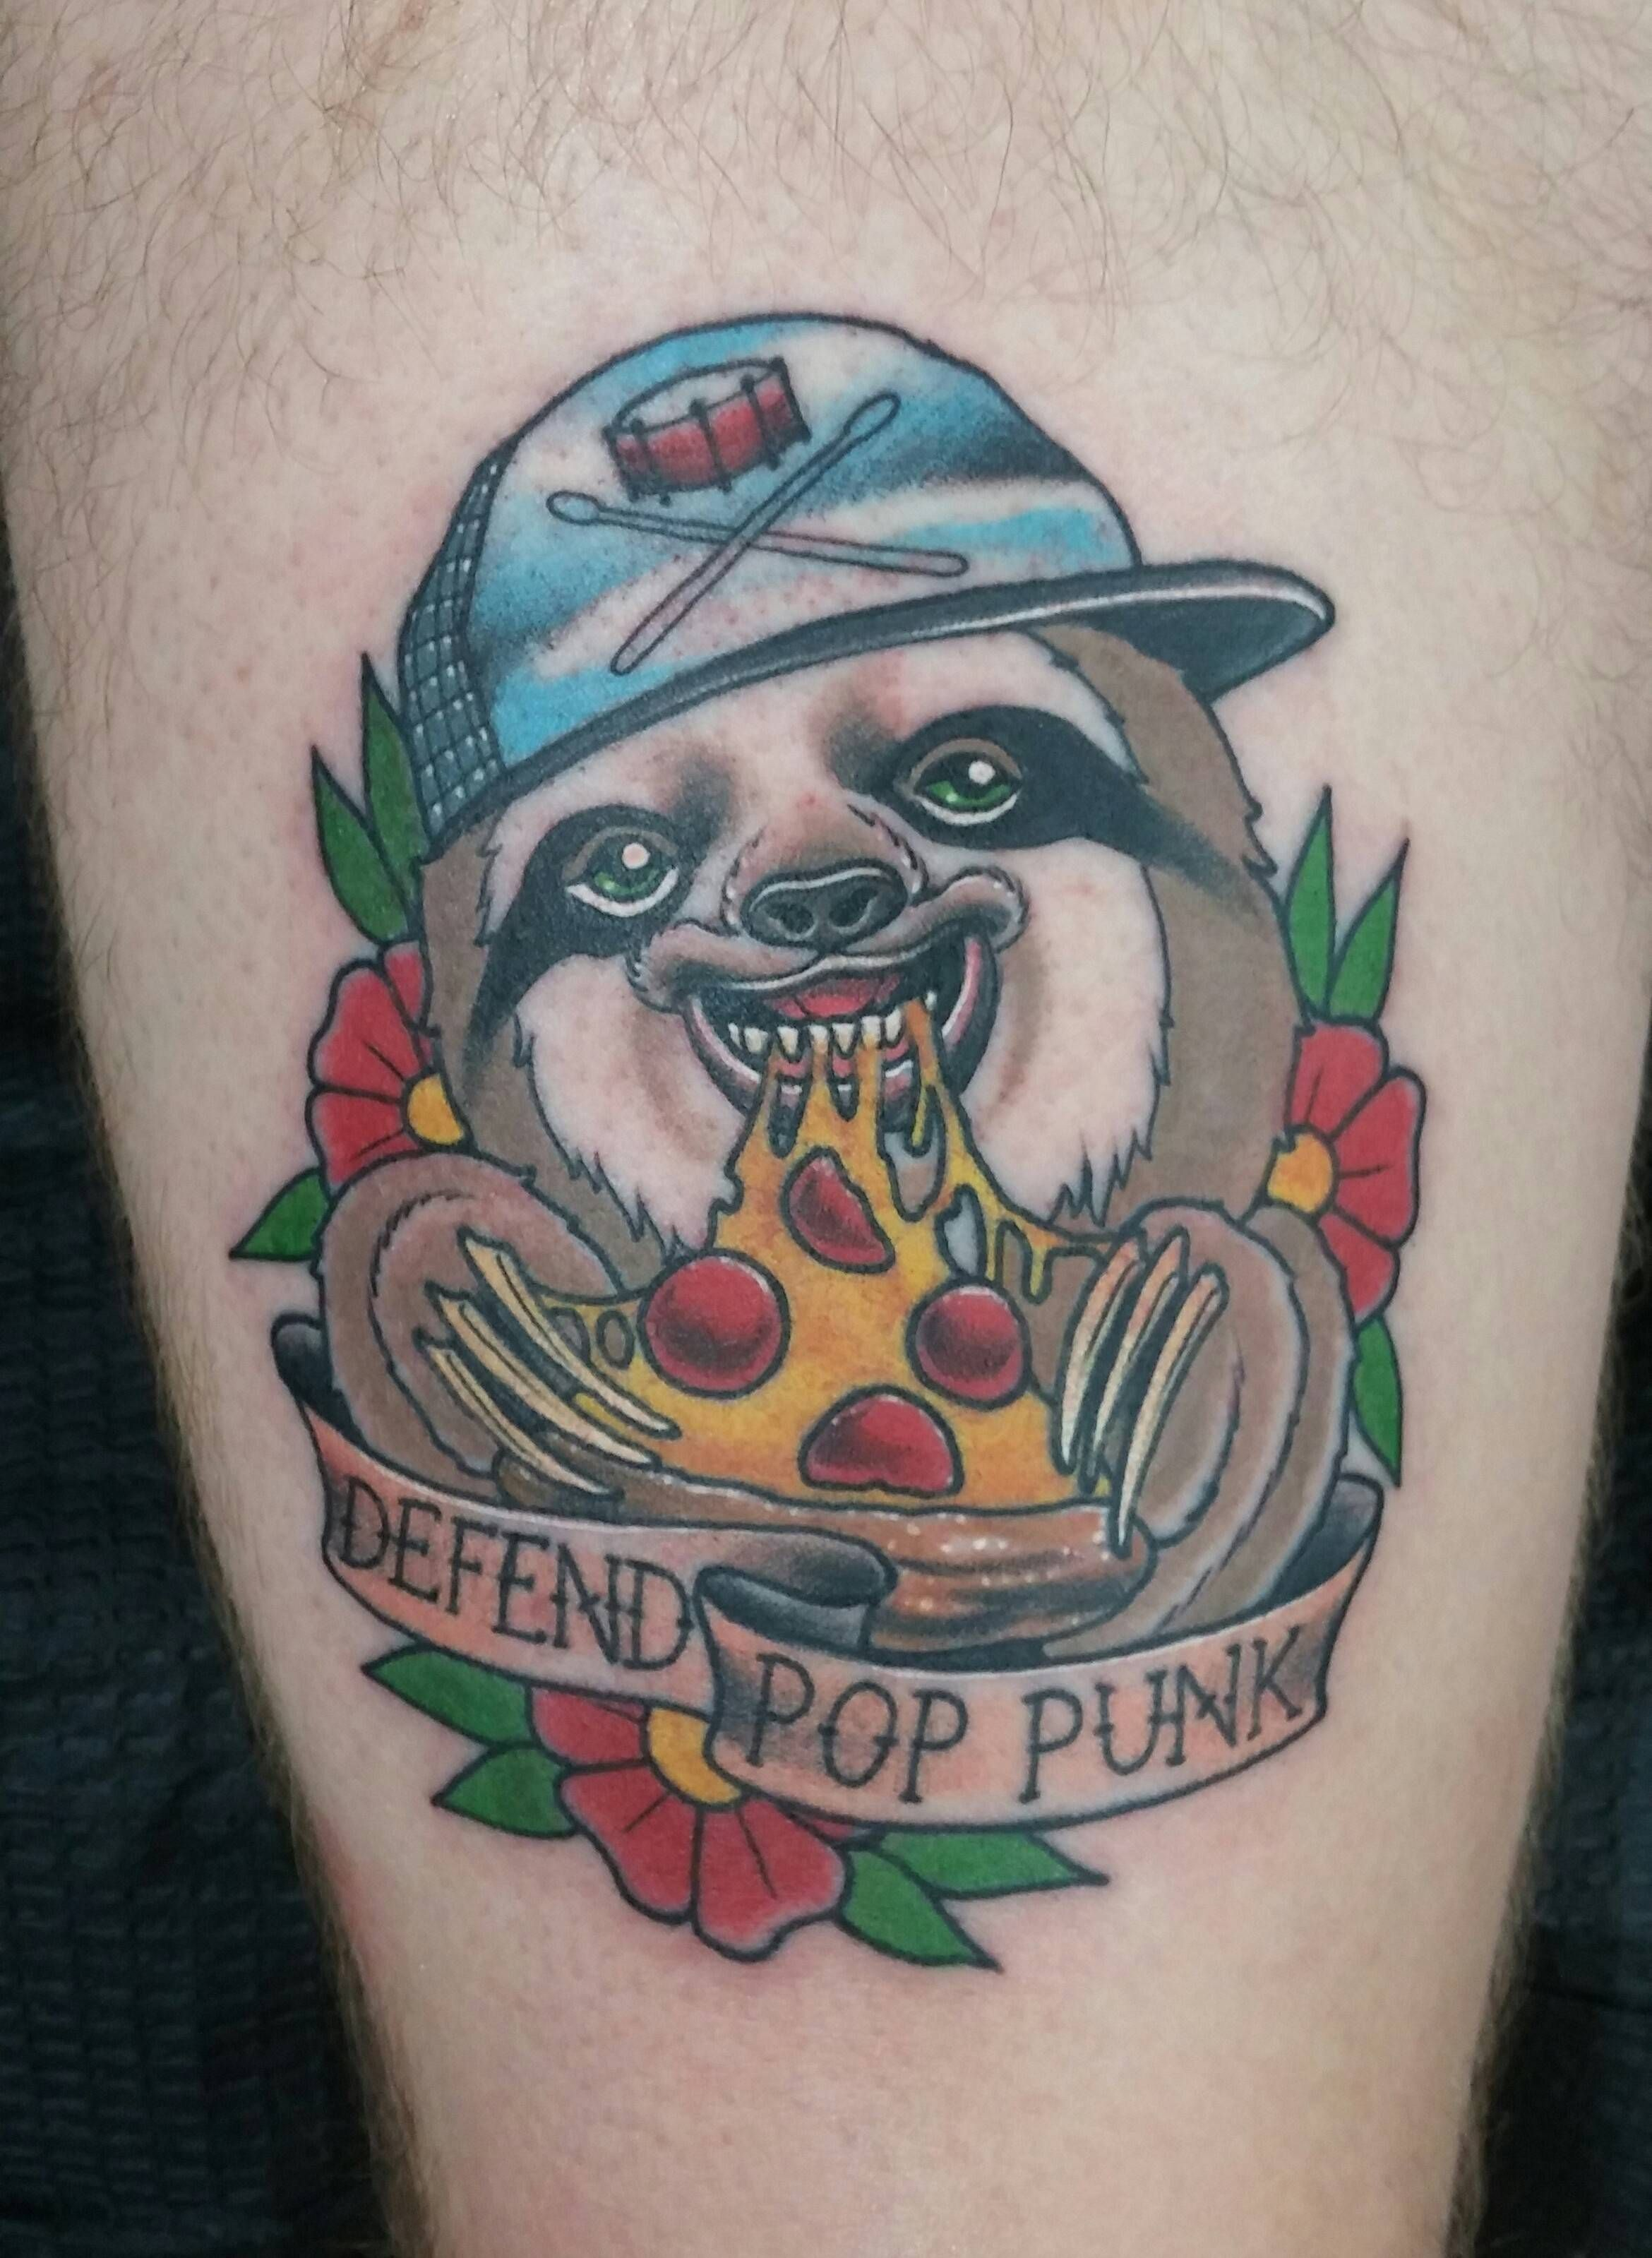 Pizza Sloth. Josh Legend at the Constable Tattoo in Plainfield IL